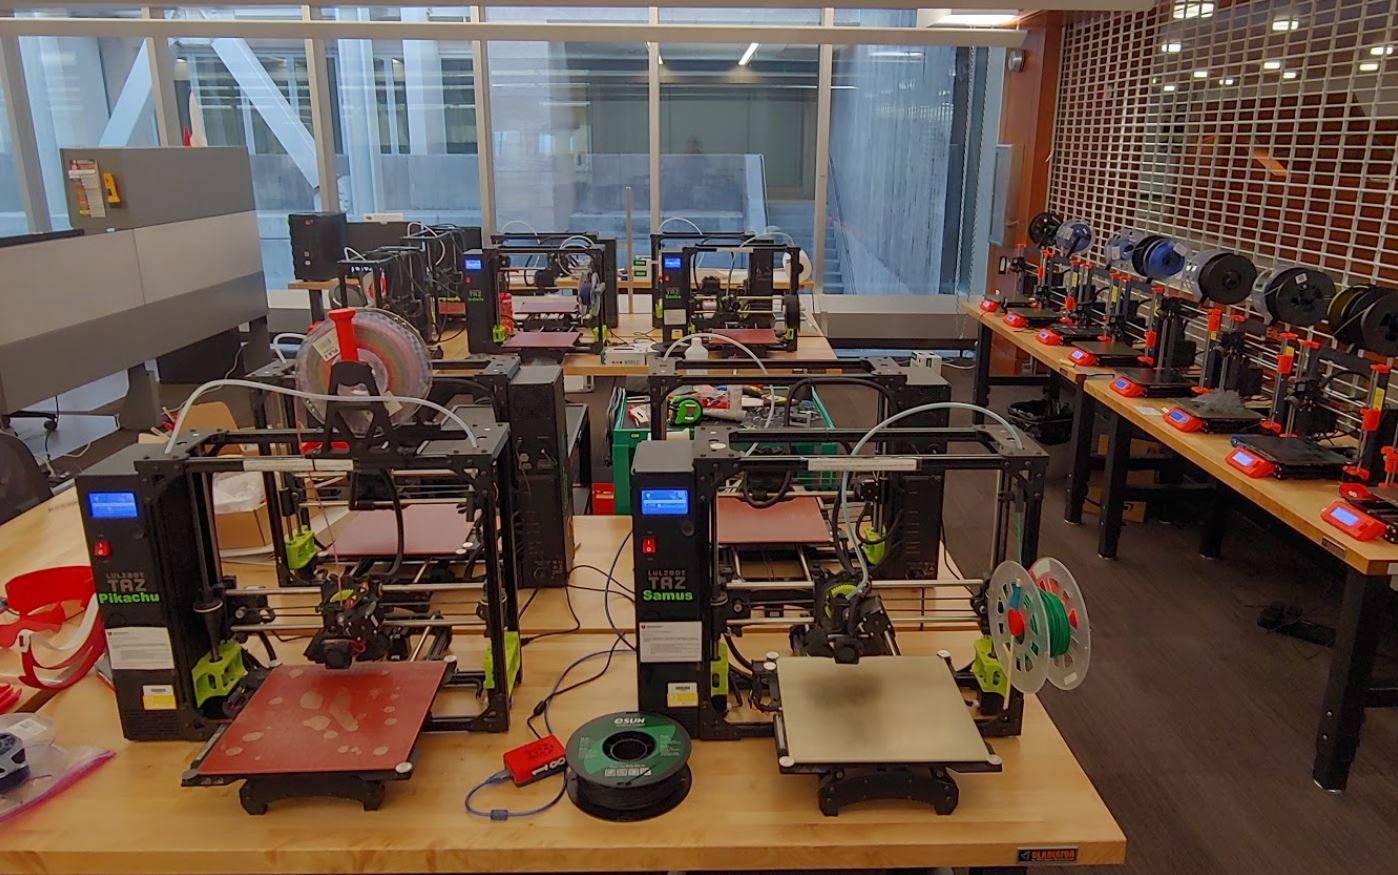 Image depicting the new 3D printer set-up / process during the Coronavirus pandemic